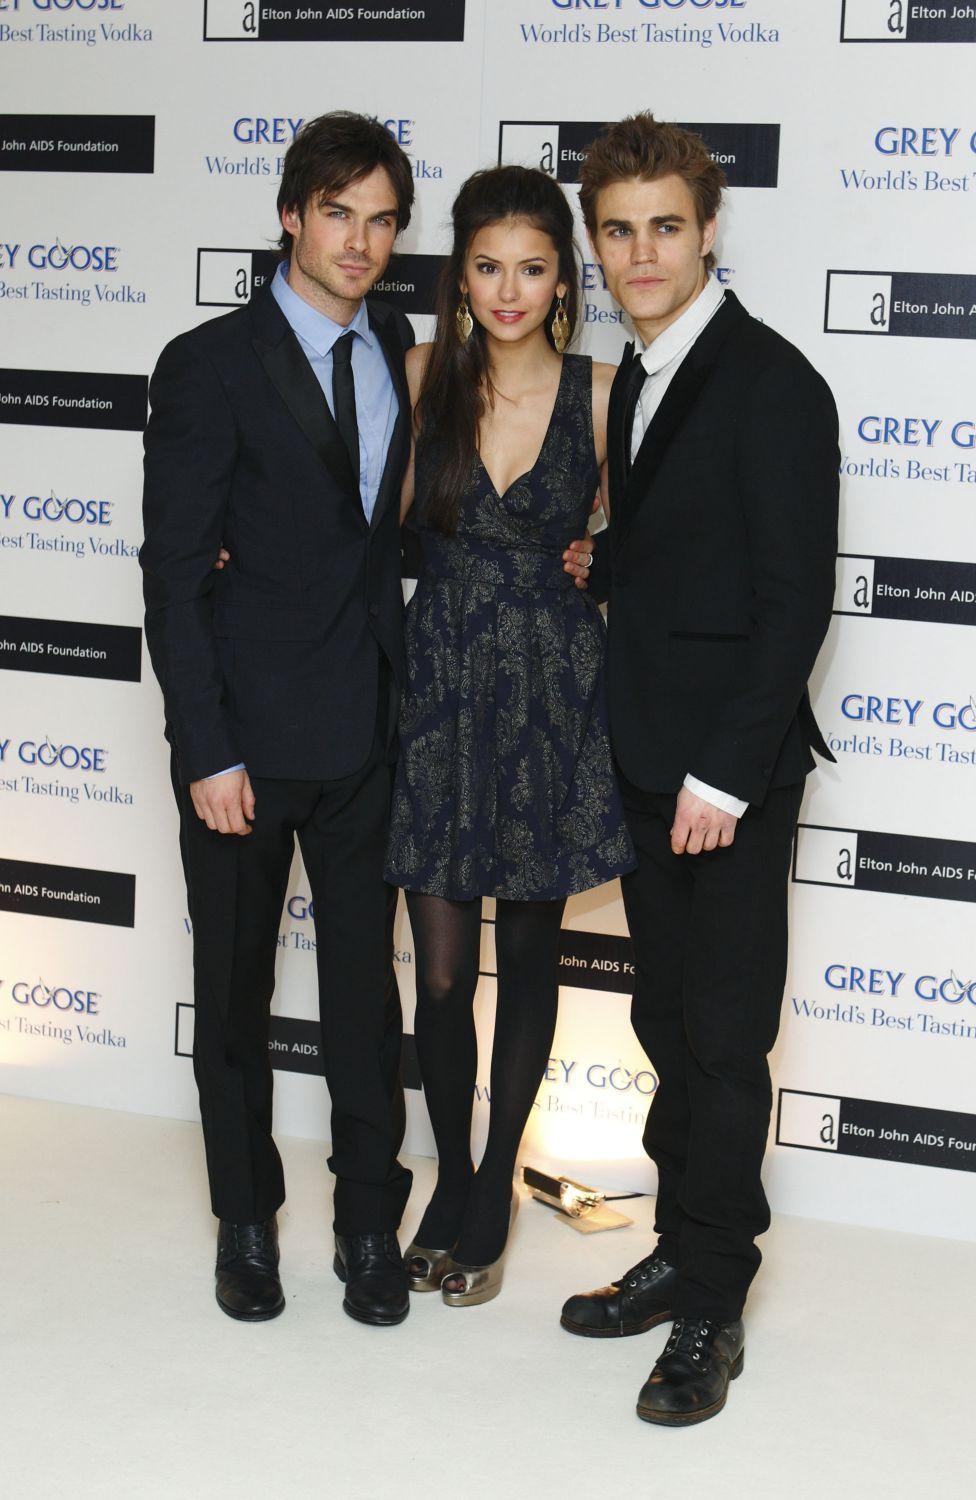 http://images2.fanpop.com/image/photos/11300000/Grey-Goose-Character-Cocktail-Winter-Fundrasier-the-vampire-diaries-11333716-976-1500.jpg